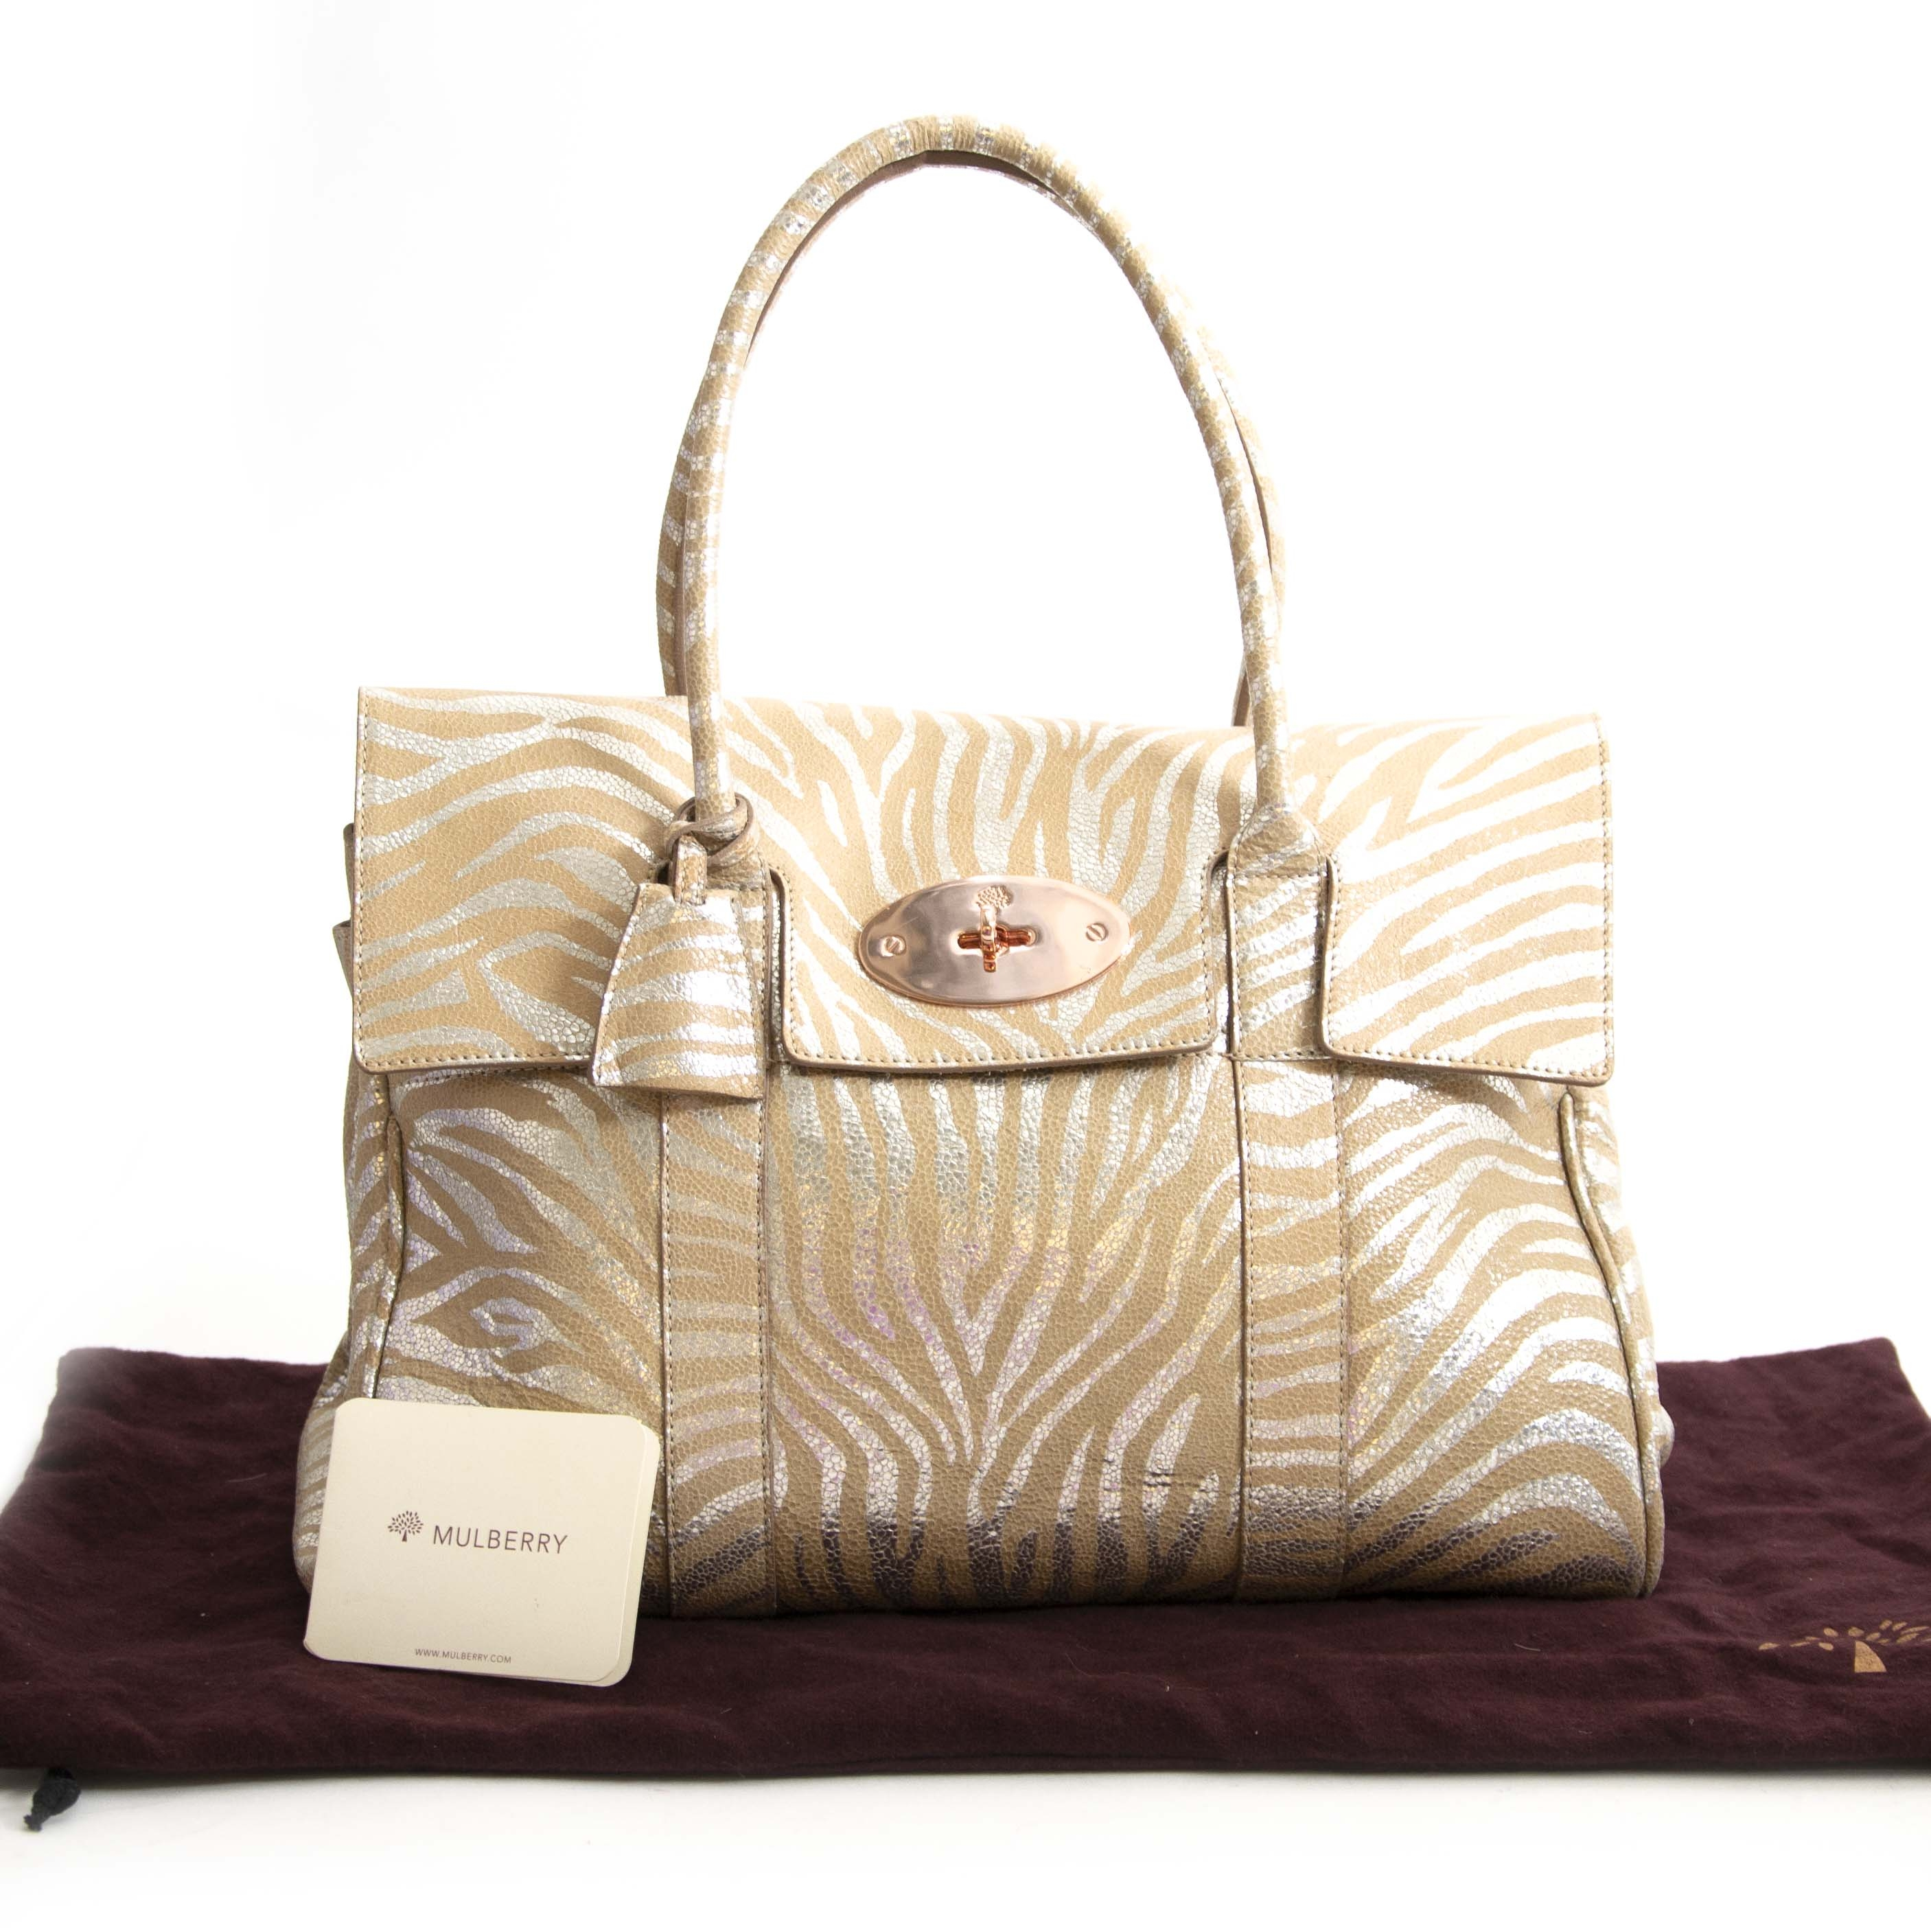 712708c4d9d Buy this authentic second hand vintage Mulberry Bayswater Metallic Tiger  Bag at online webshop LabelLOV.